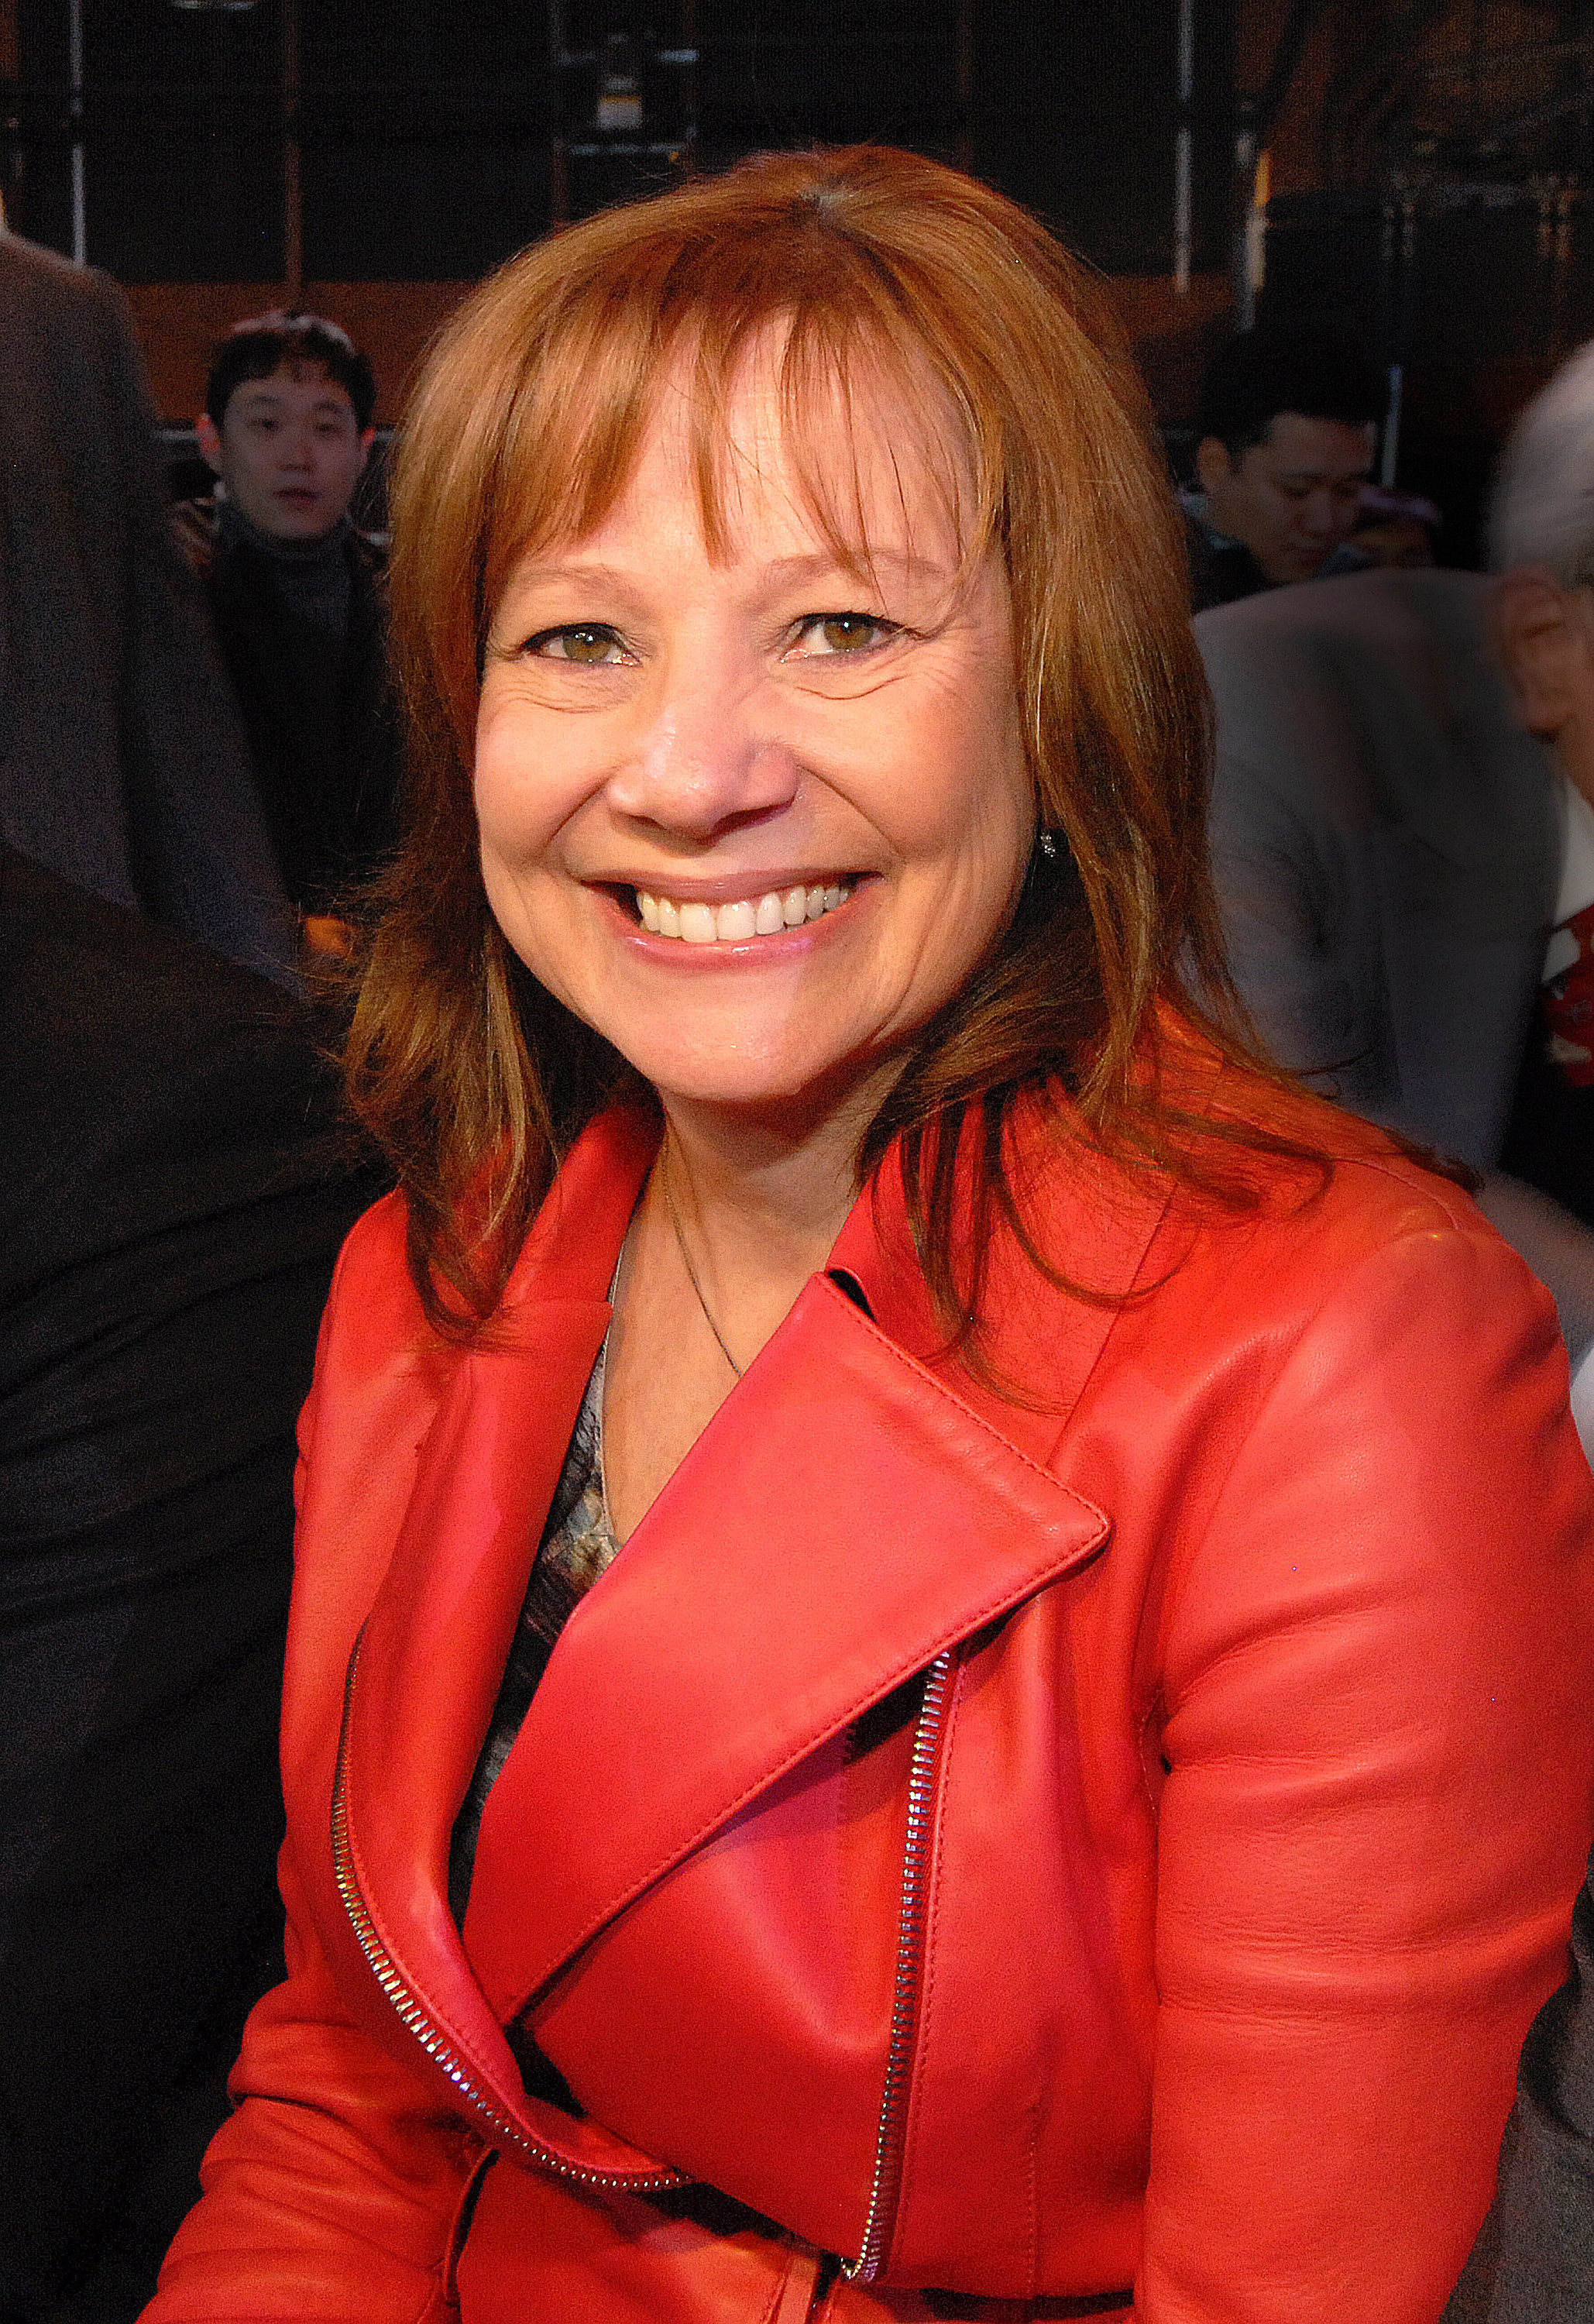 Mary Barra, CEO of General Motors, attends the Buick Avenir press conference on Jan. 11, 2015 in Detroit, Michigan.